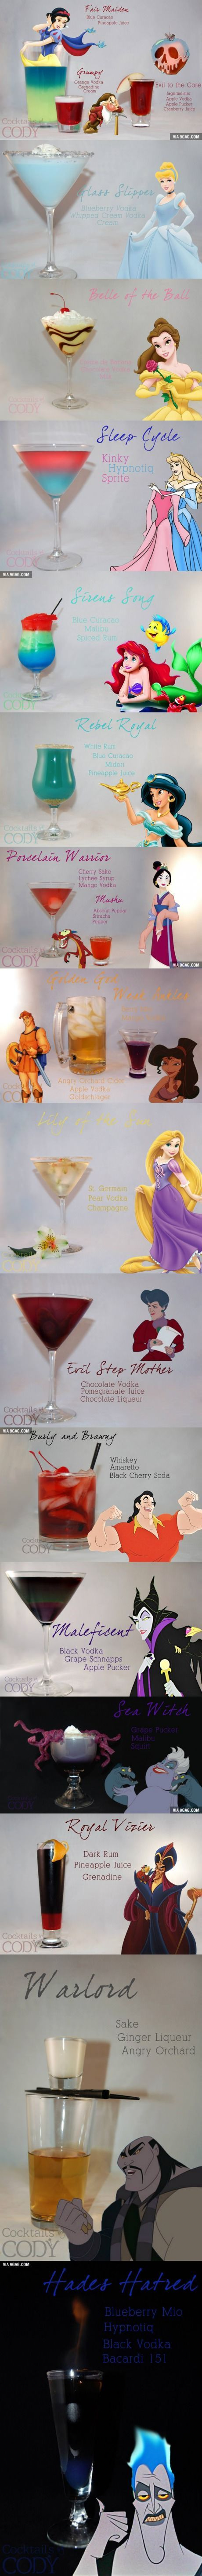 Disney inspired drinks for when im 21